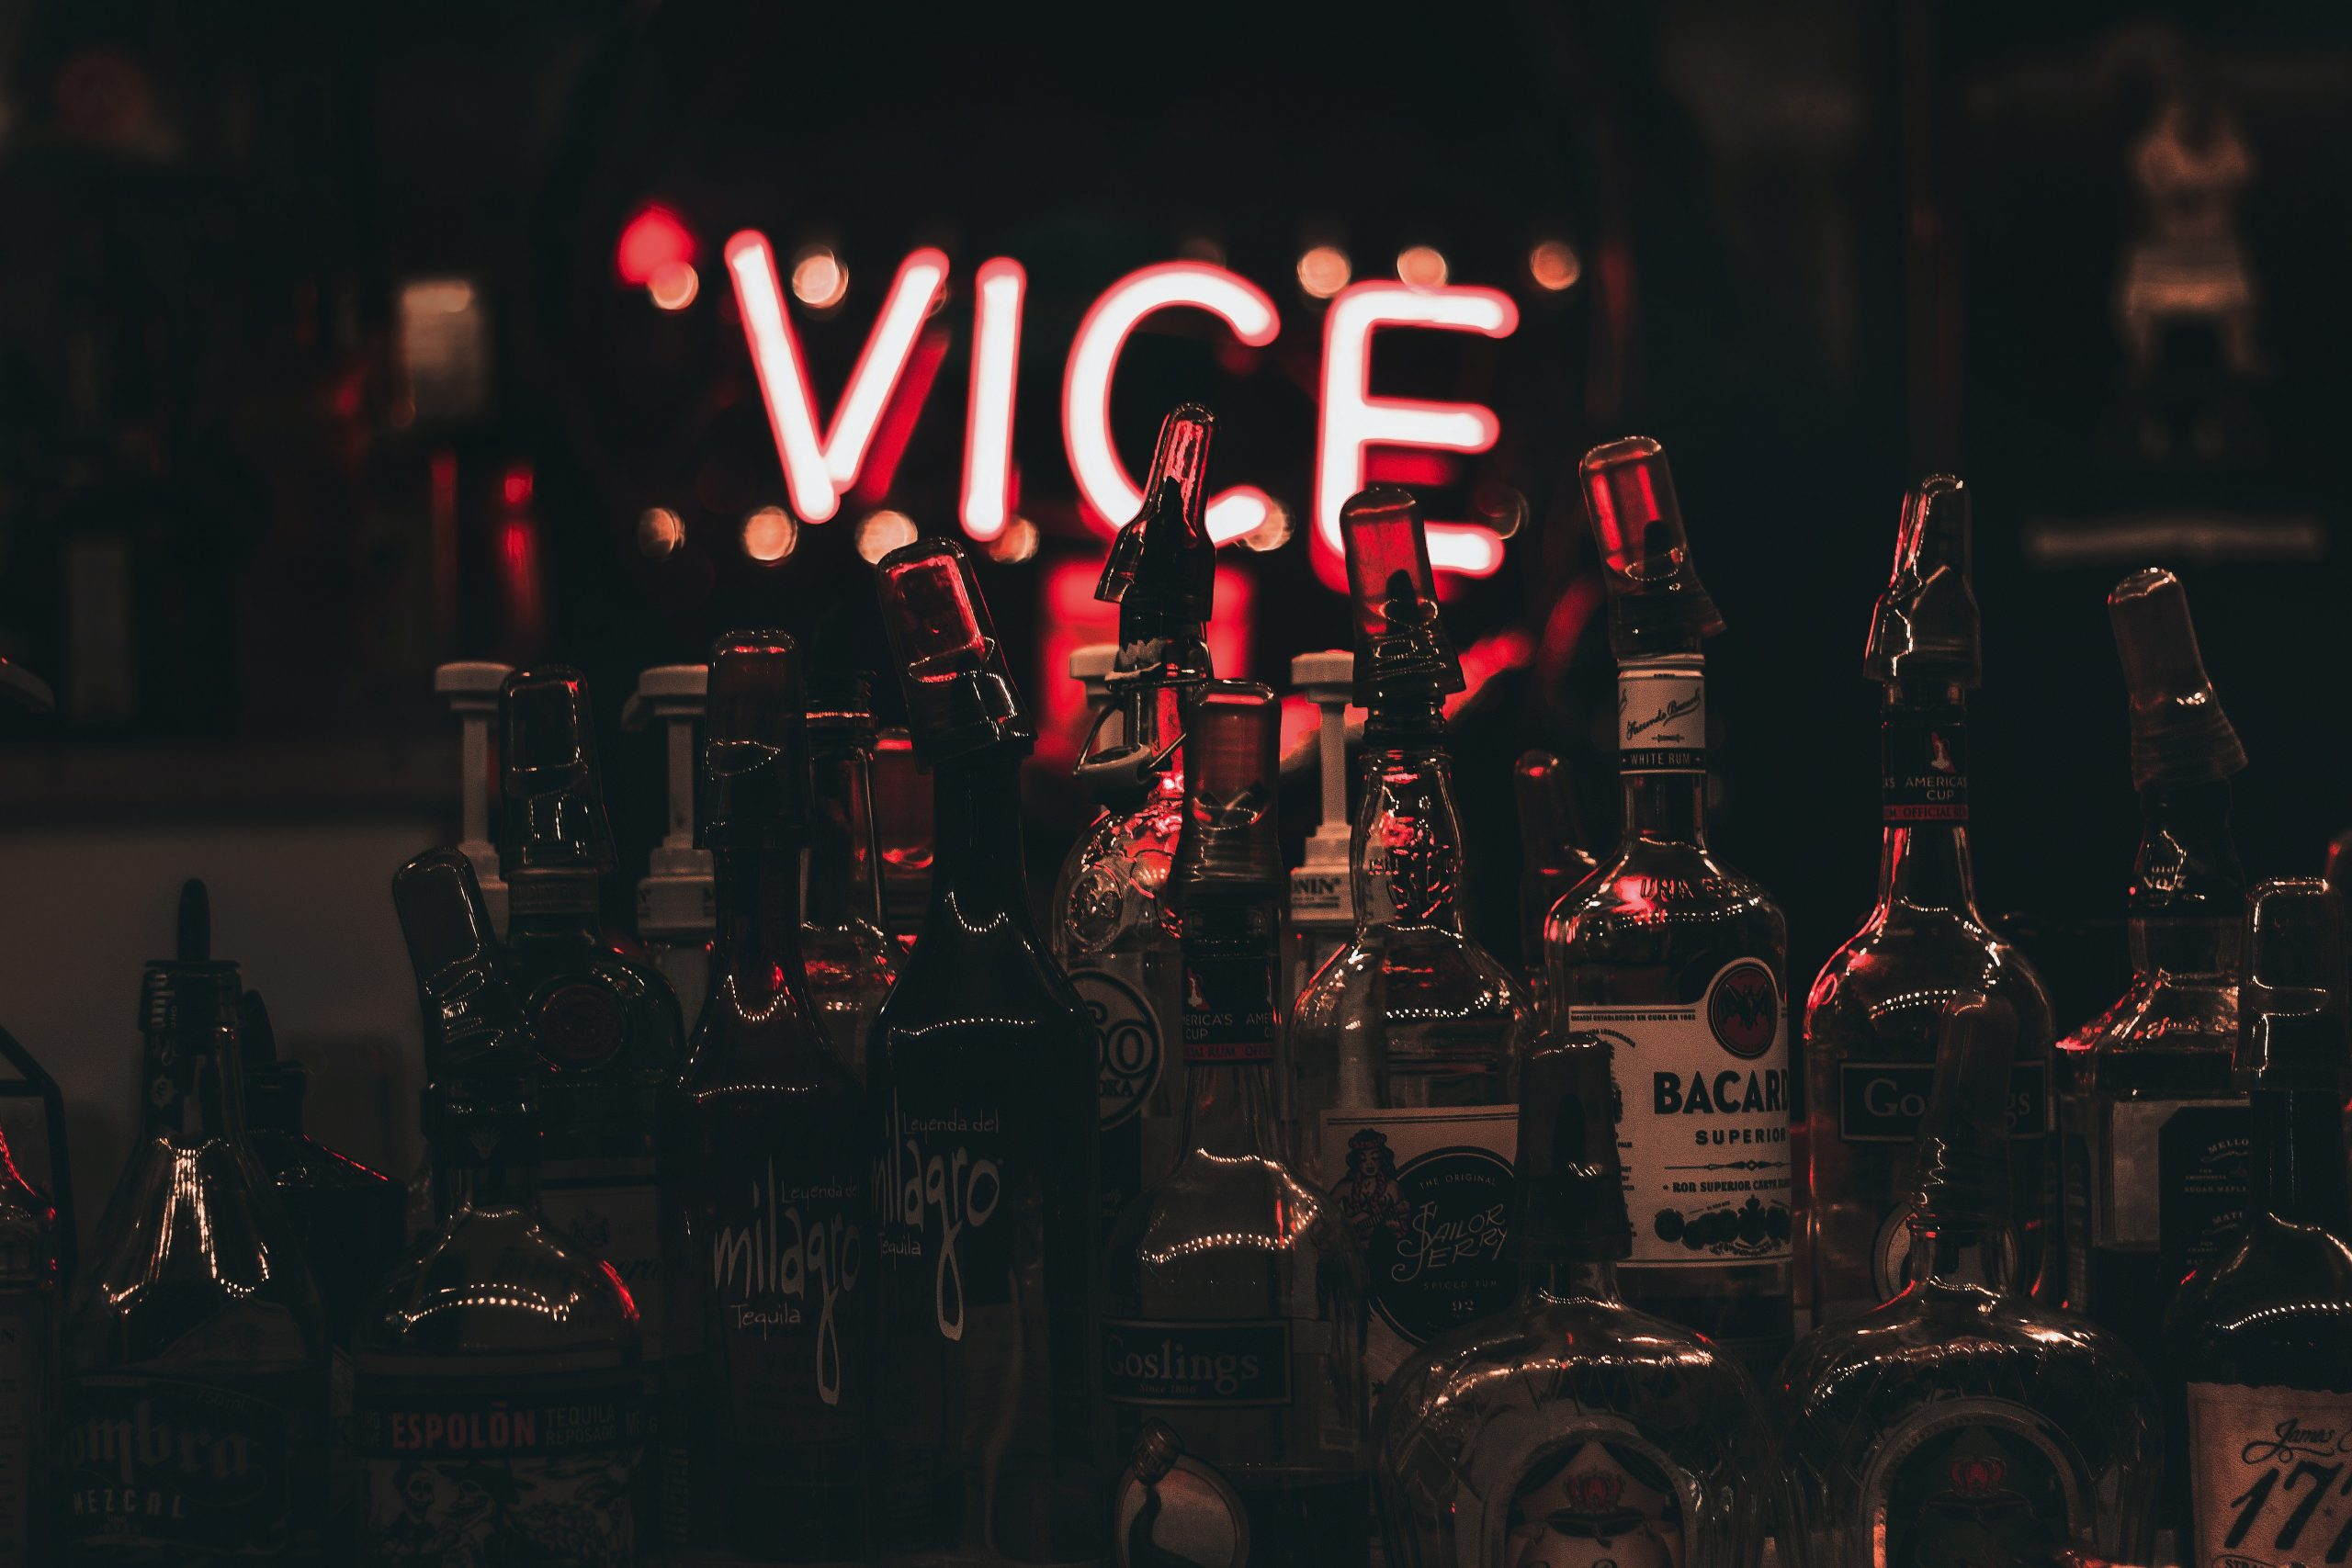 control your vices | vice alcohol